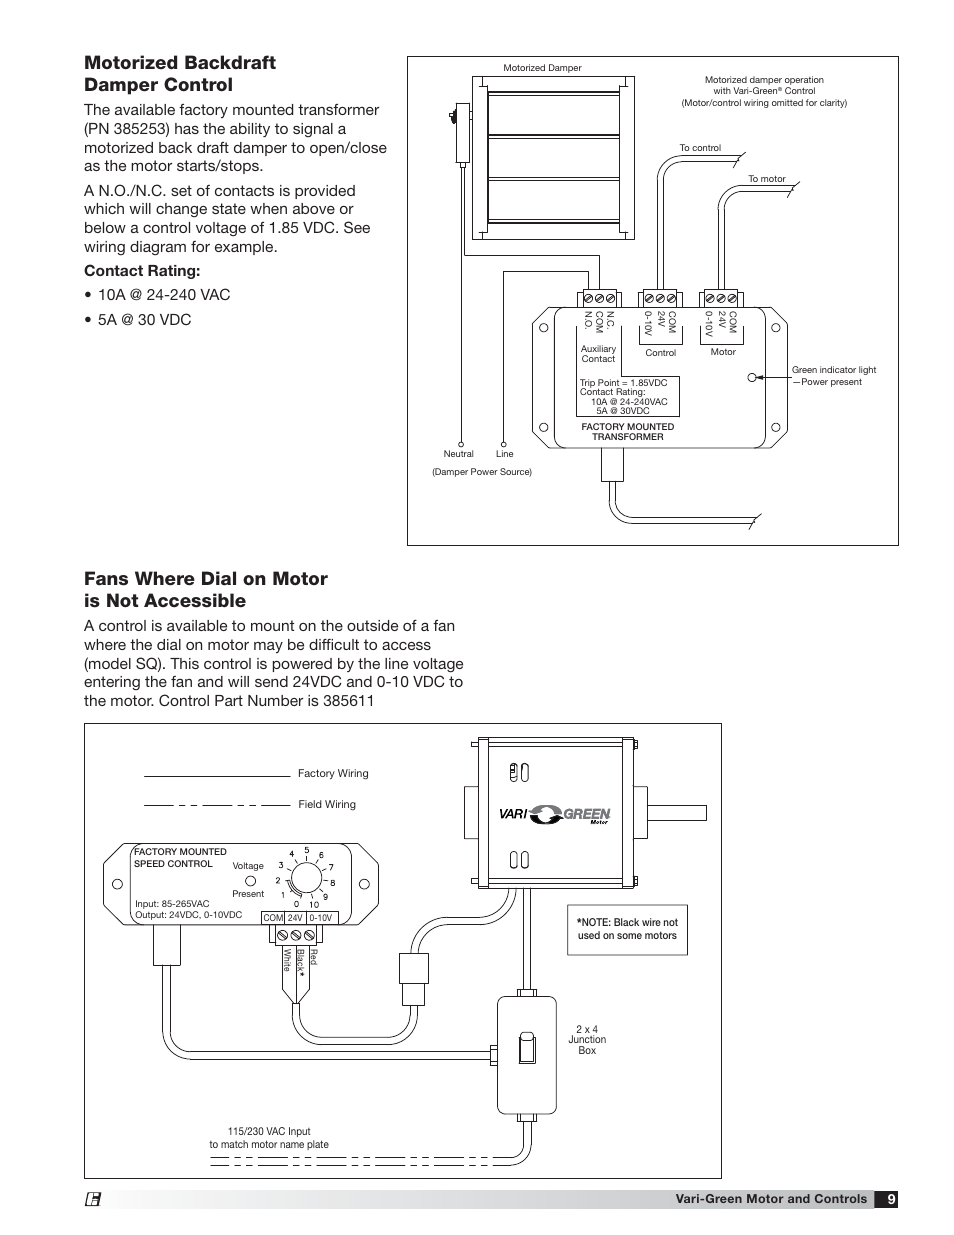 24 Vac Motorized Damper Wiring Diagram